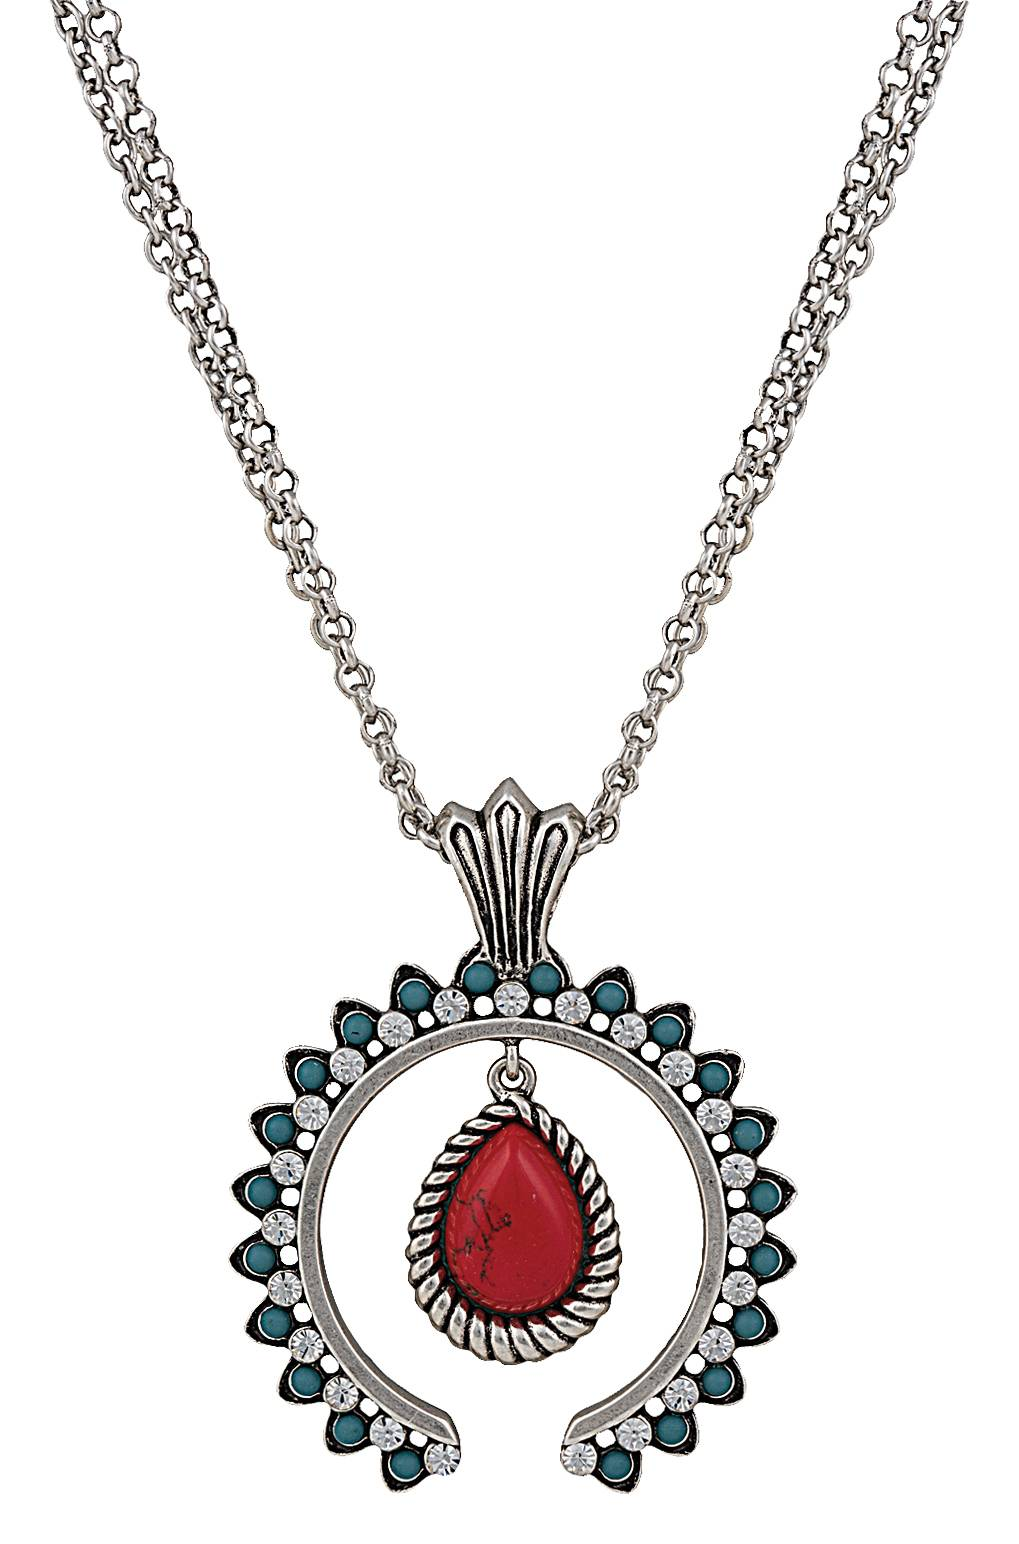 Rock 47 Tribal Flair Red and Turquoise Squash Blossom Necklace